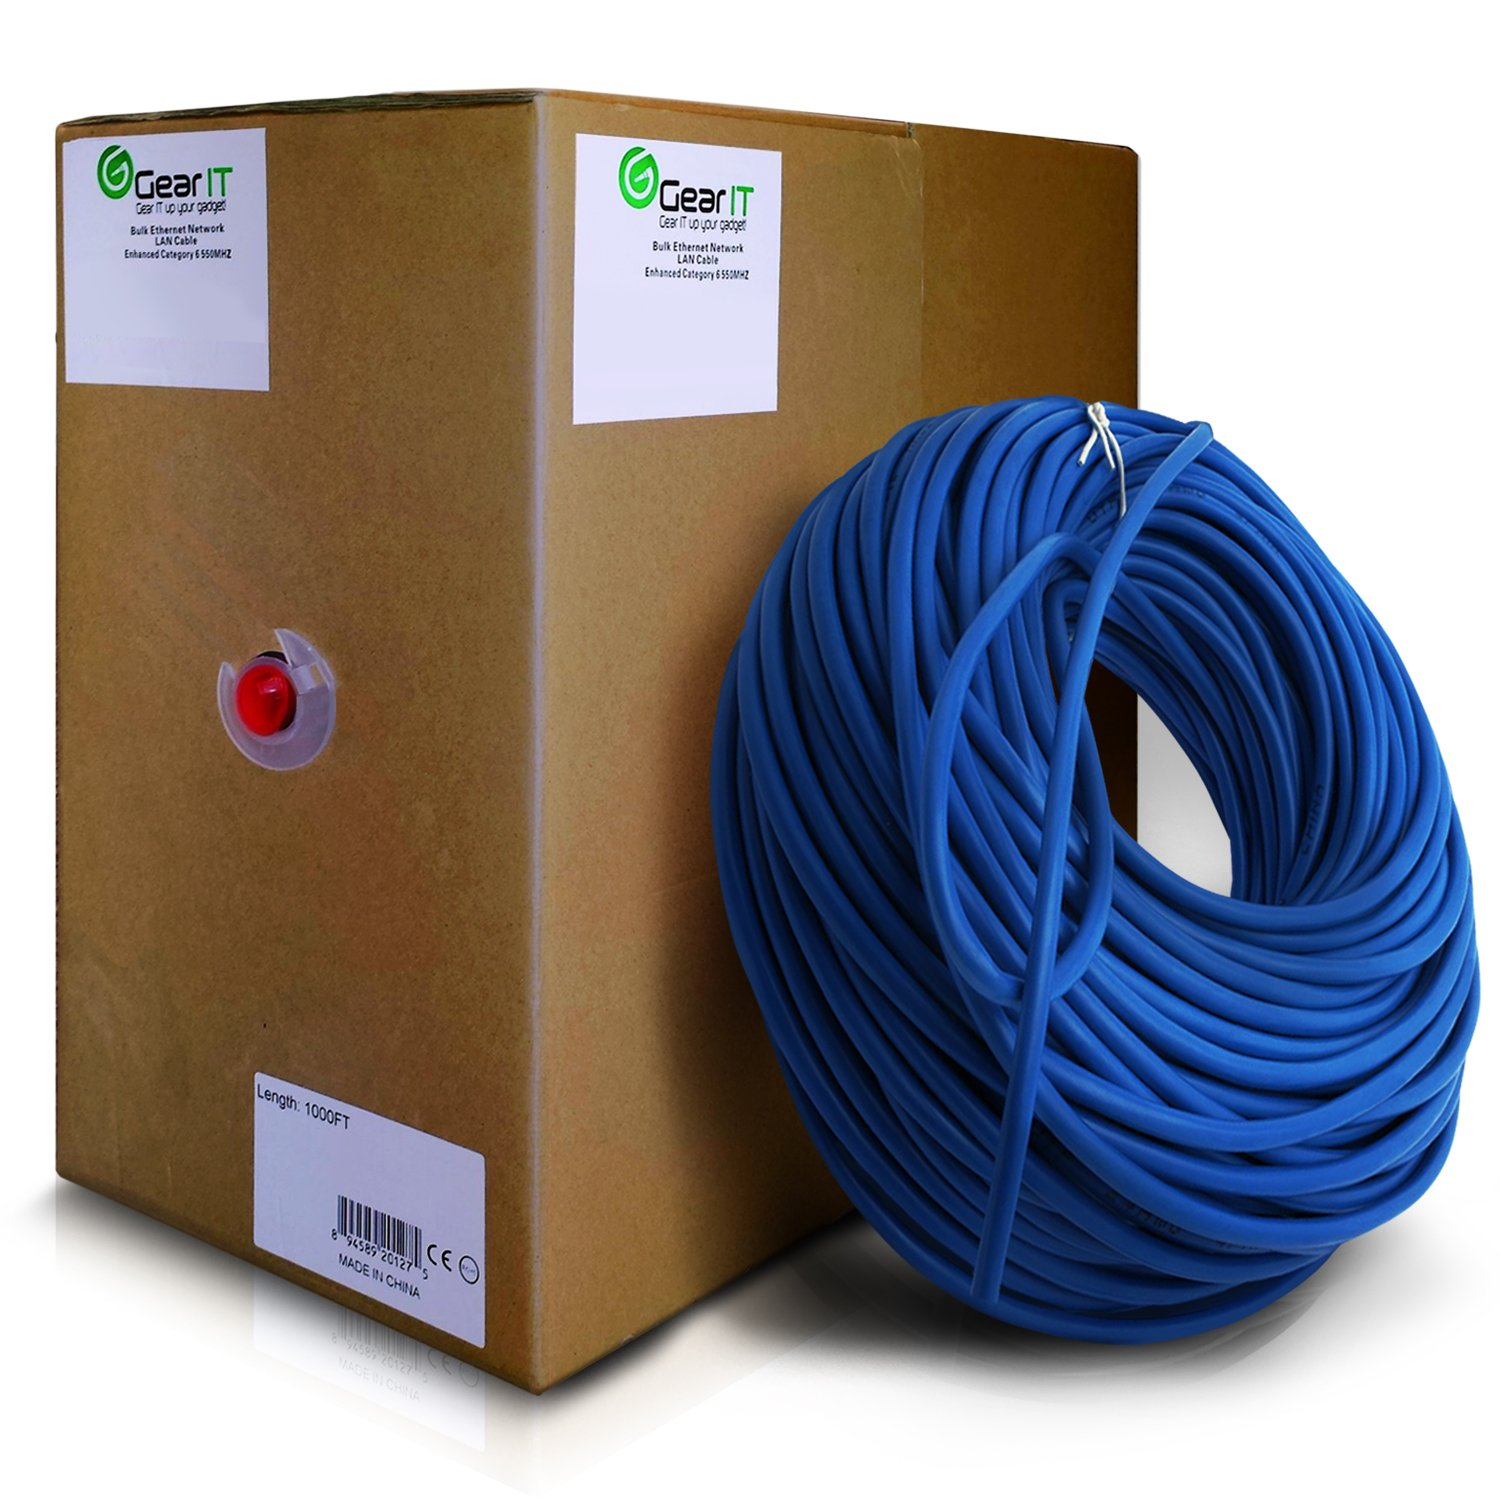 GearIt Cat5e Ethernet Cable Bulk 1000 Feet - Cat 5e 350Mhz 24AWG Full Copper Wire UTP Pull Box - In-Wall Rated (CM) SOLID Cat5e, Blue by GearIT